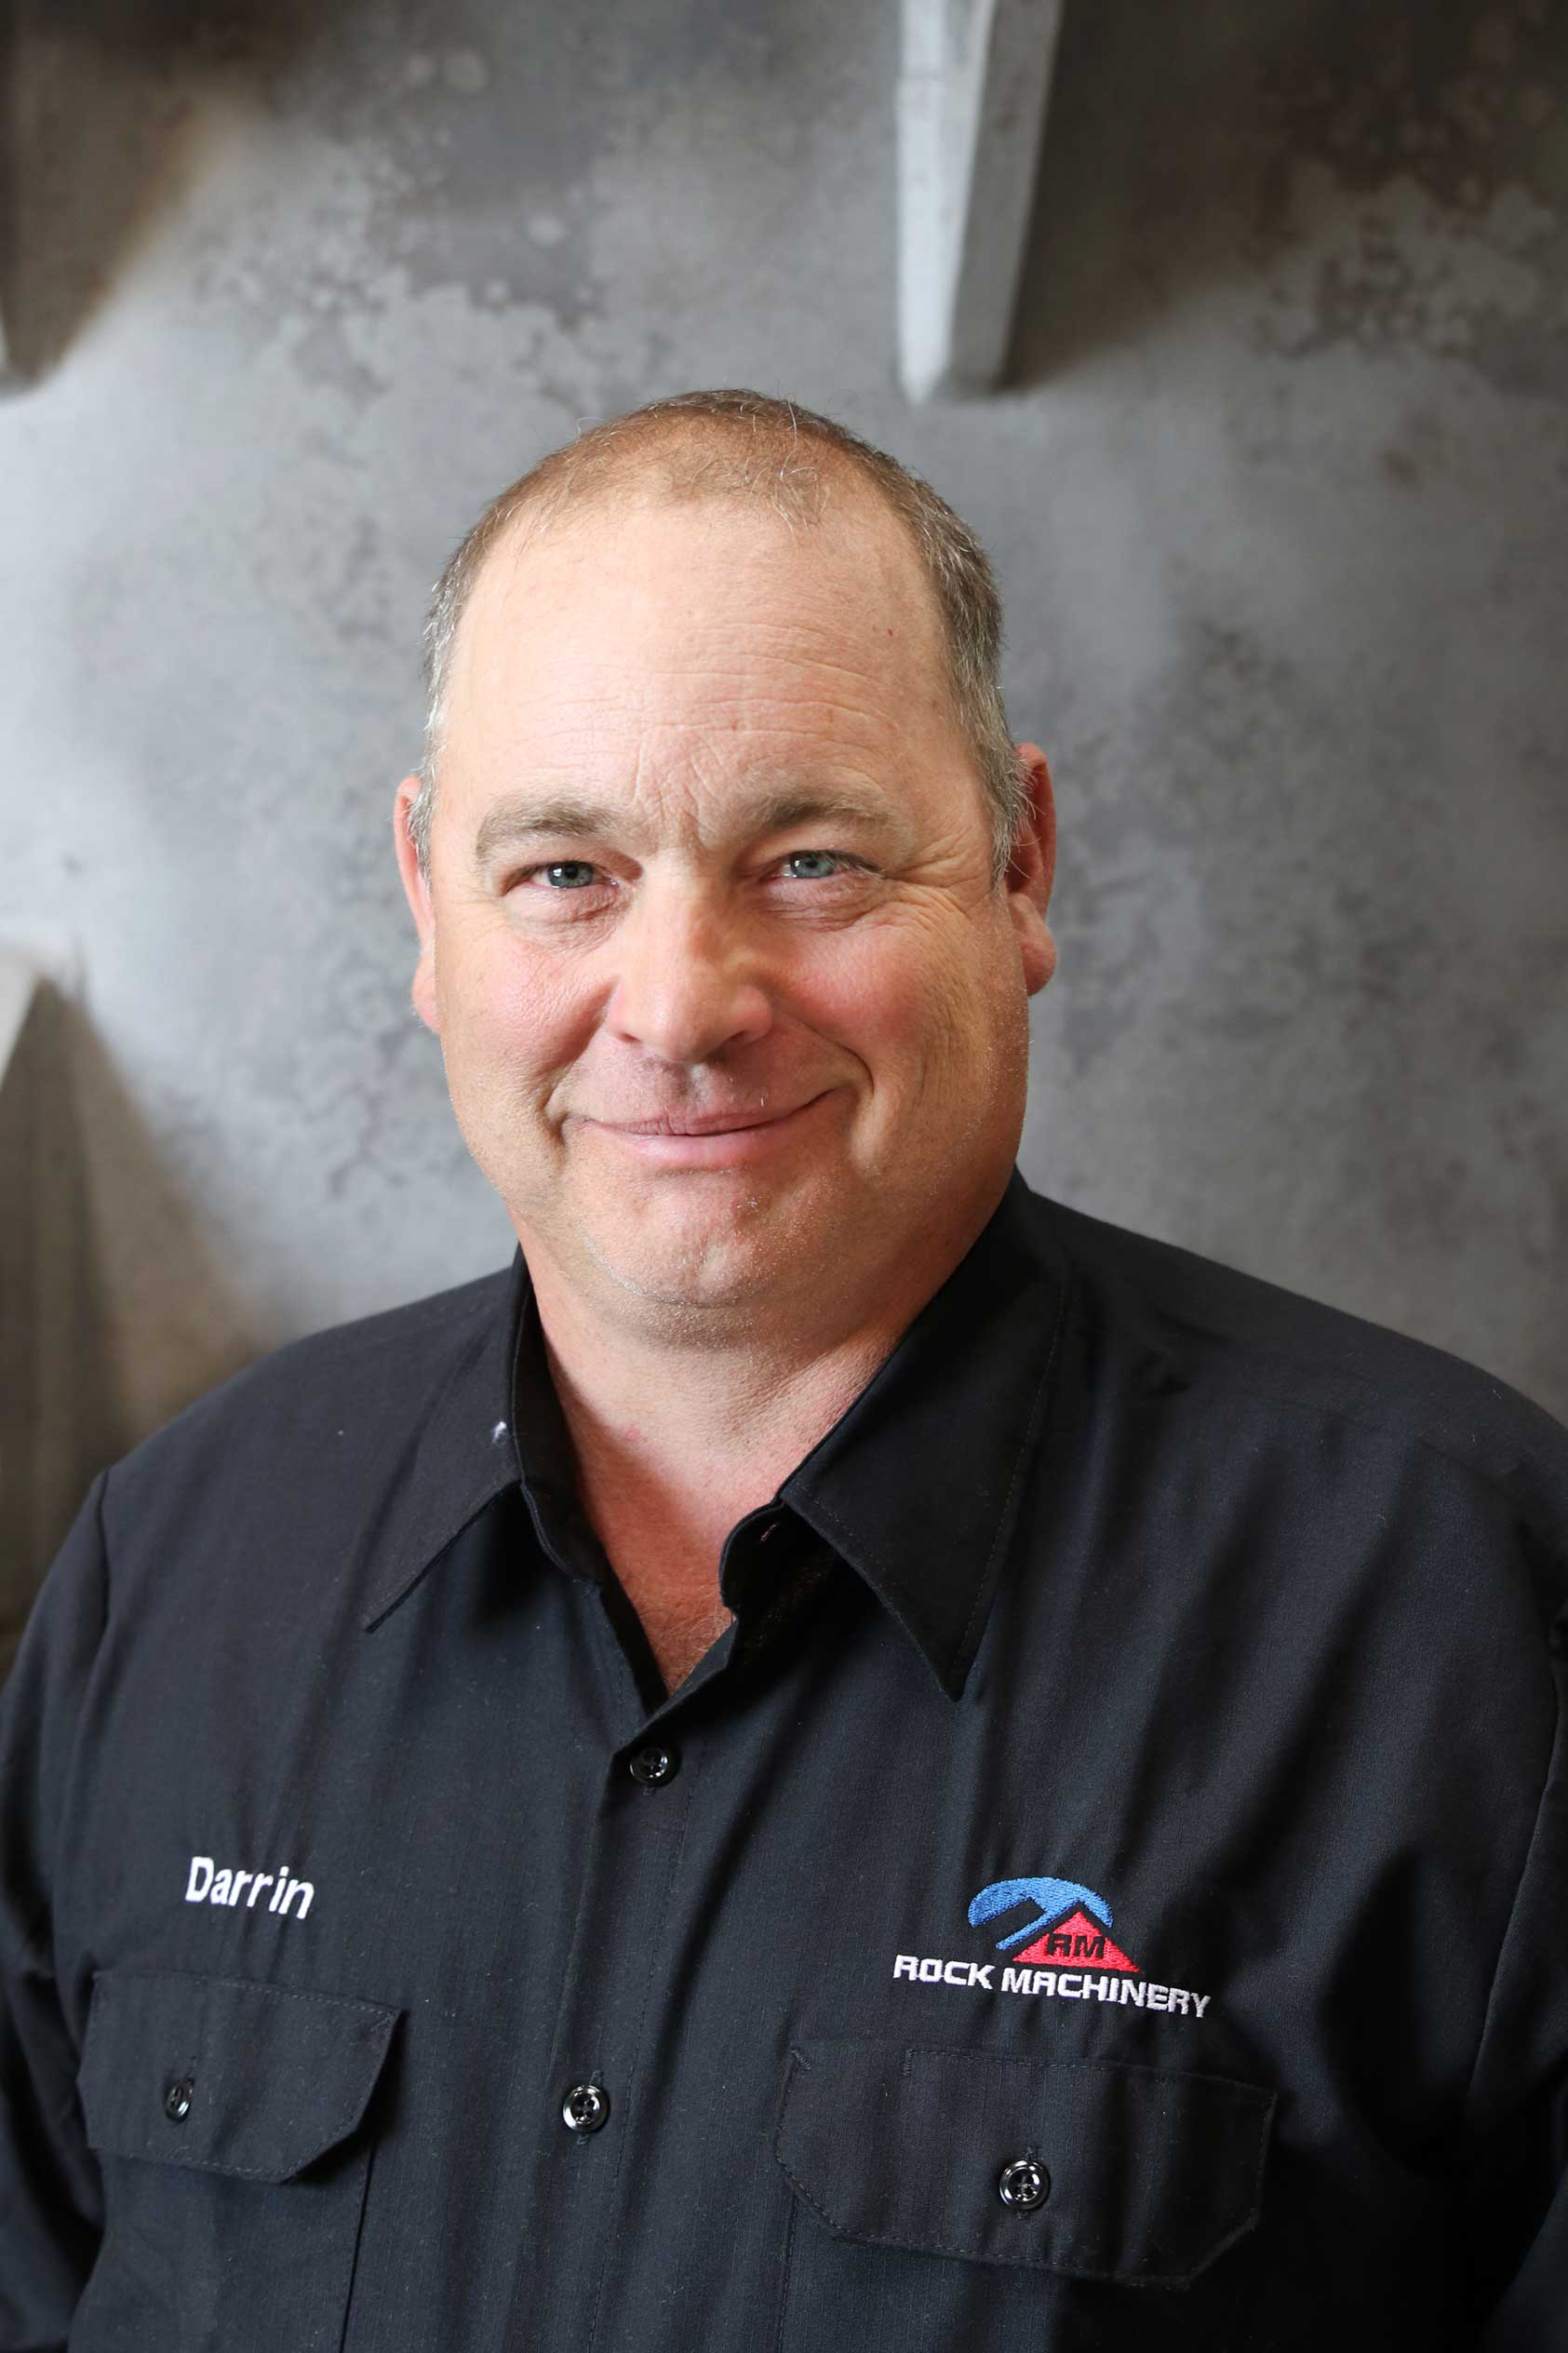 Rock Machinery Announces New Service Manager